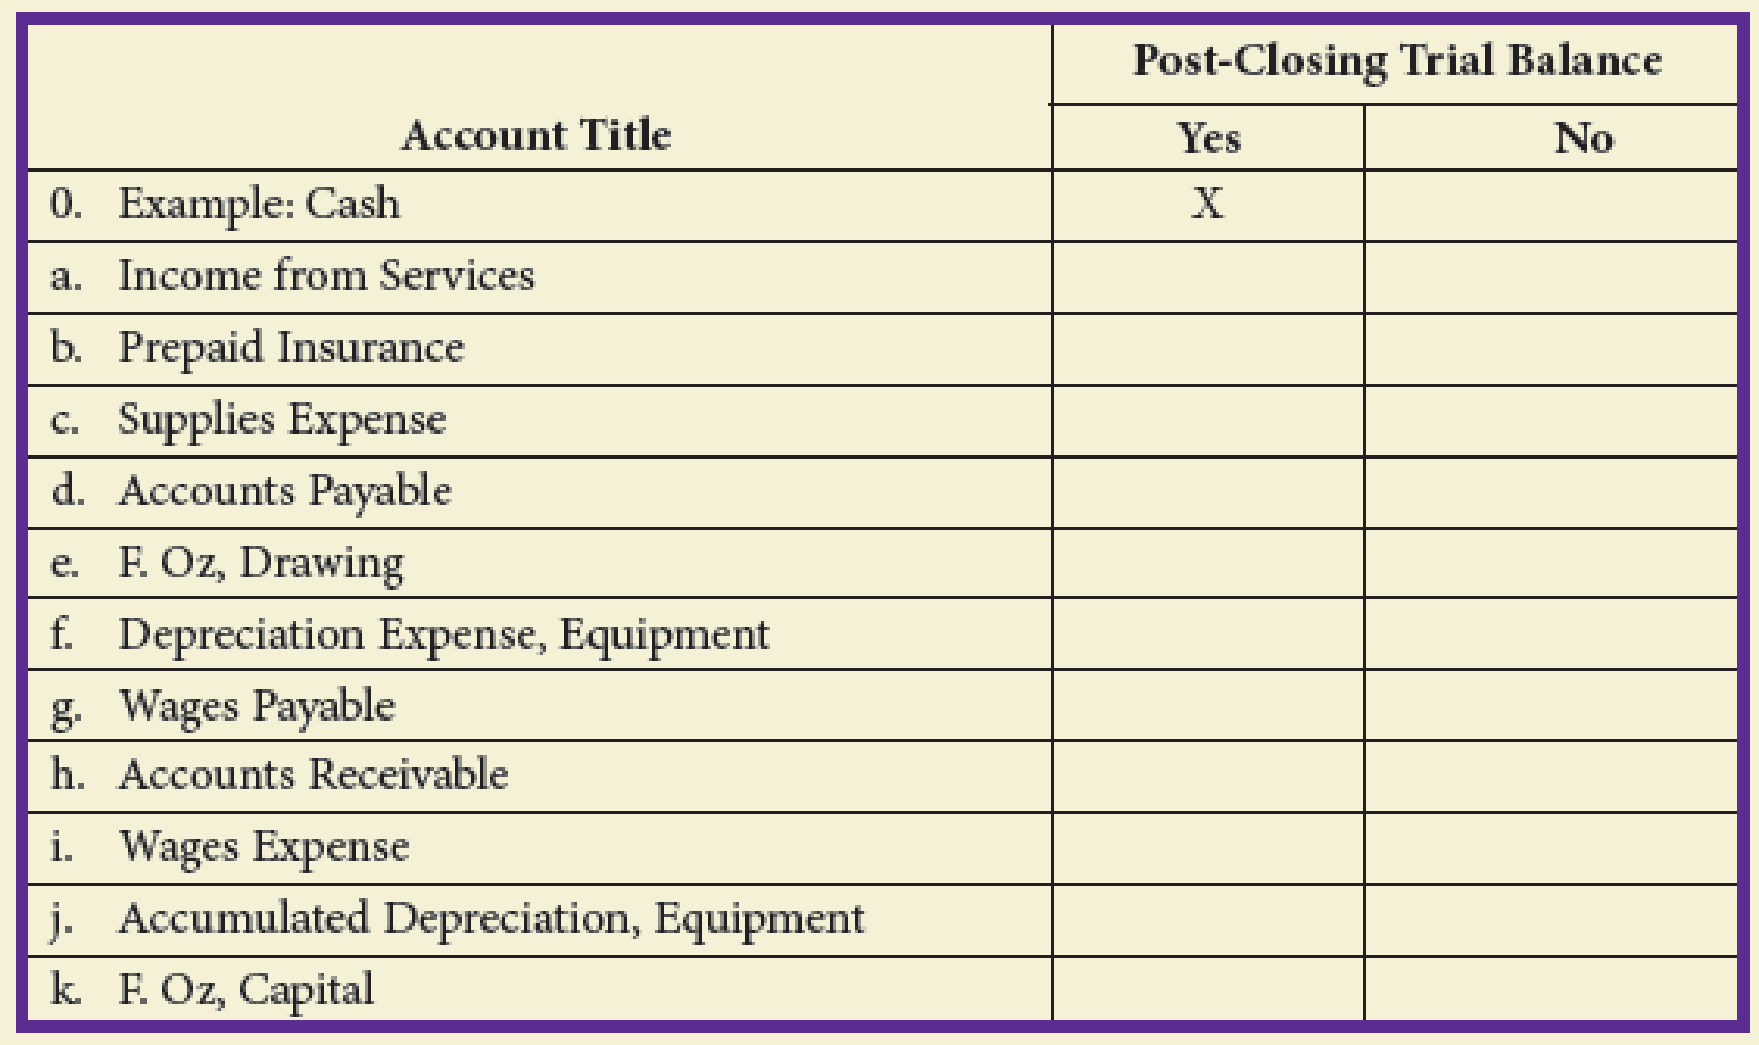 Chapter 5, Problem 7E, Identify whether the following accounts would be included on a post-closing trial balance.